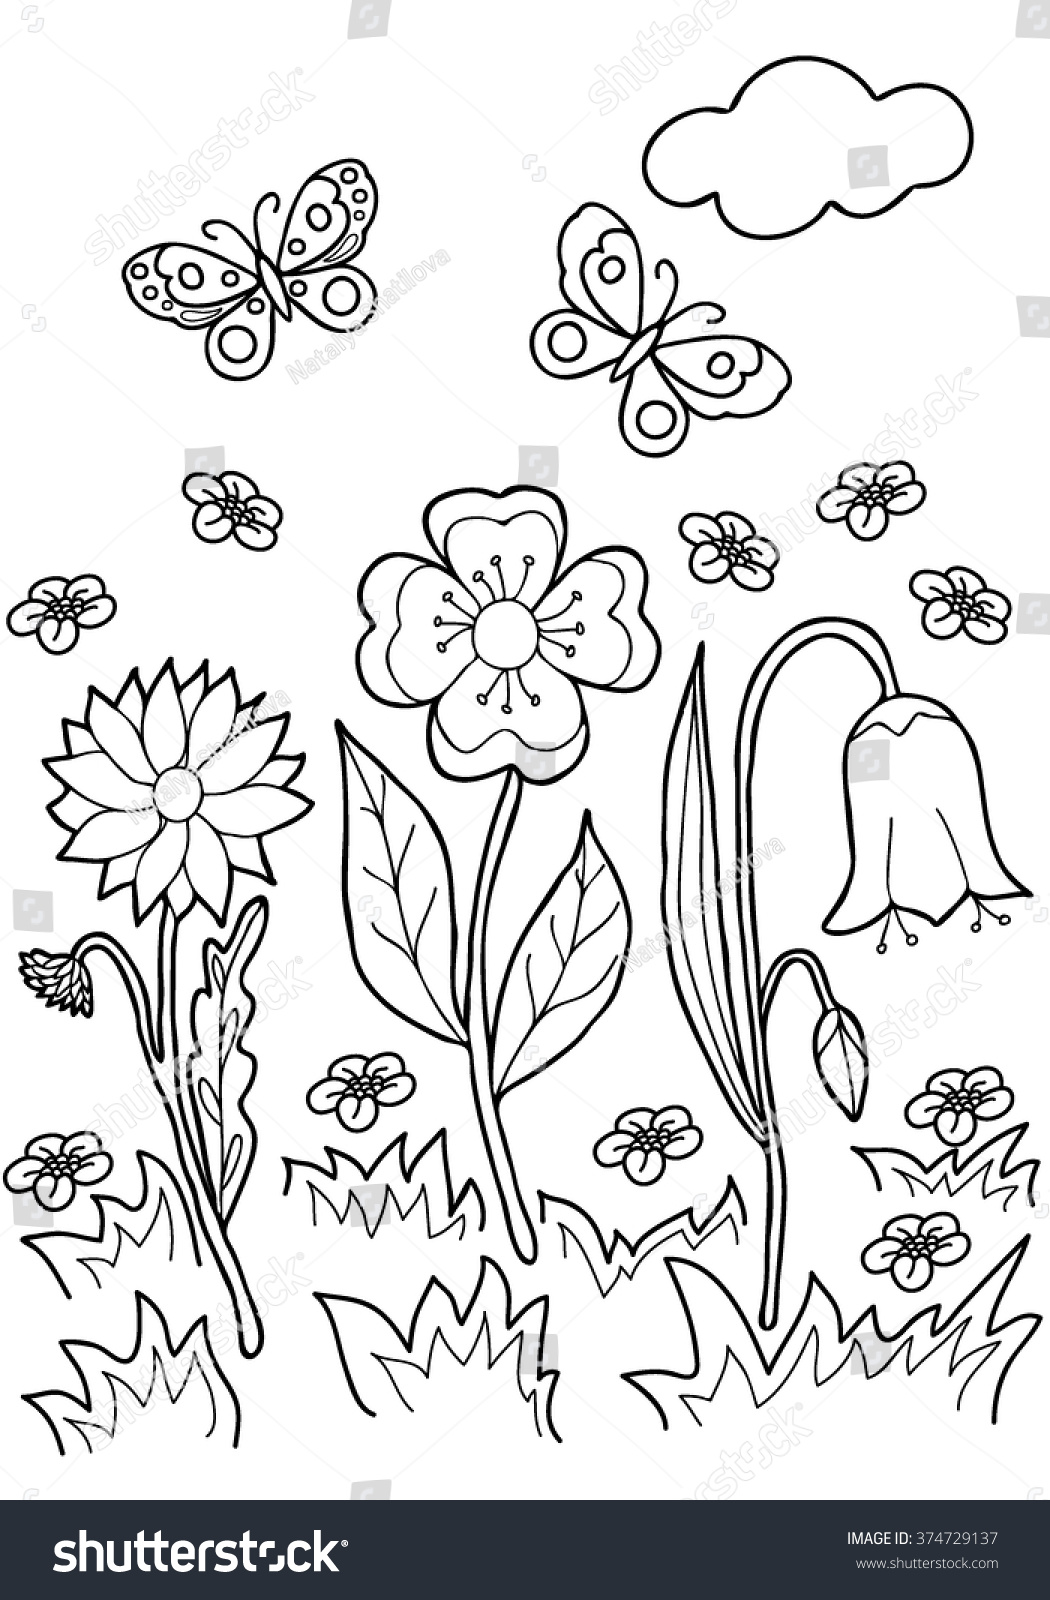 Coloring Book Hand Drawn Black And WhiteAdults ChildrenFlowers